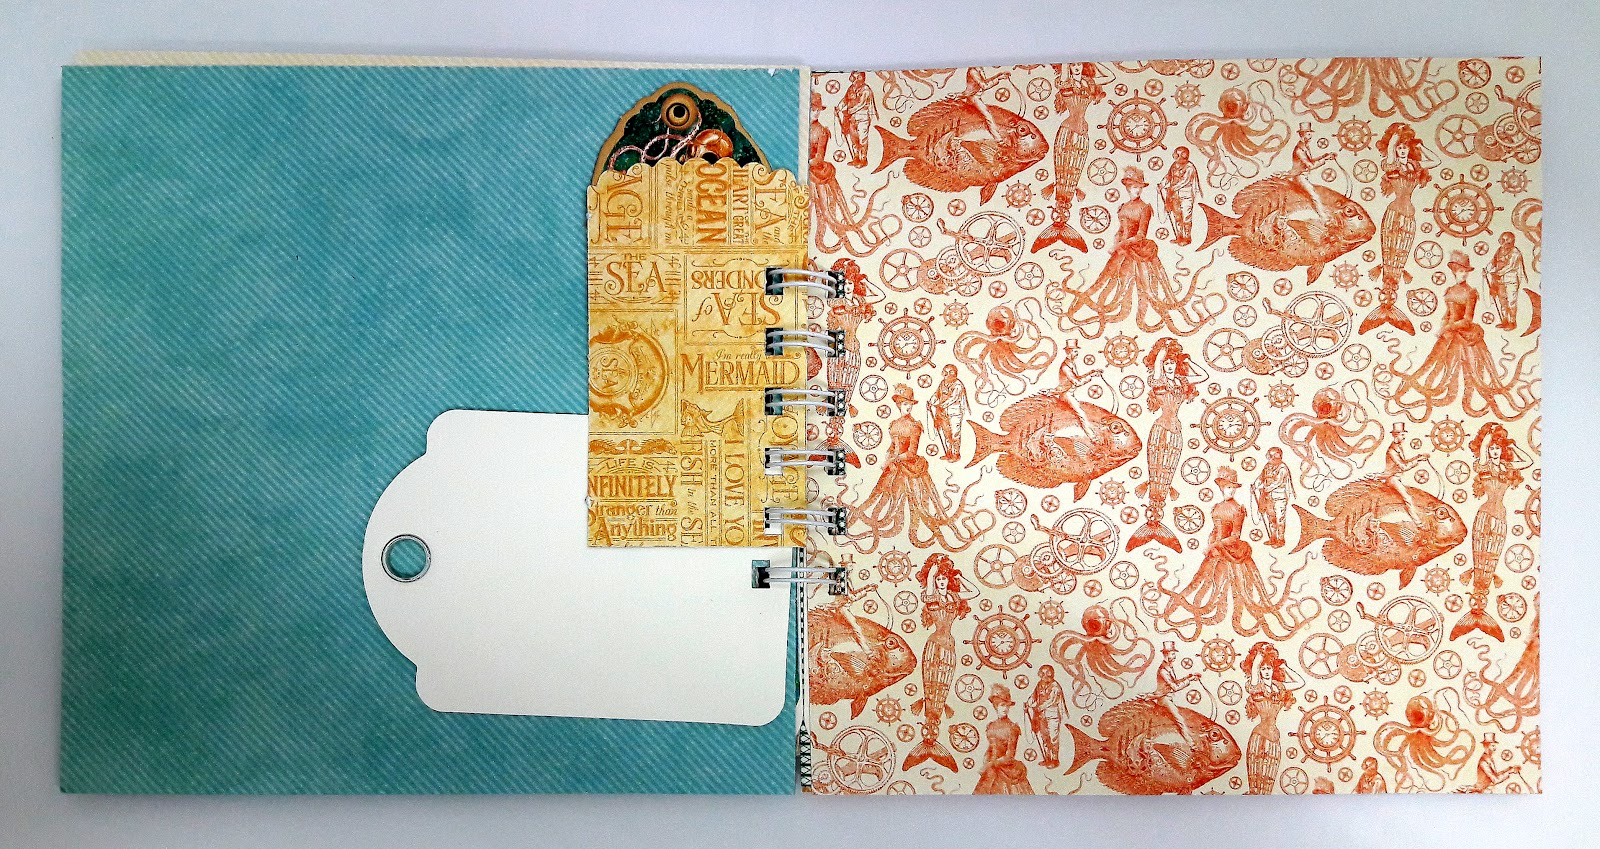 Vacation Notebook, Einat Kessler, Voyage beneath the Sea, product by Graphic 45, photo 3.jpg